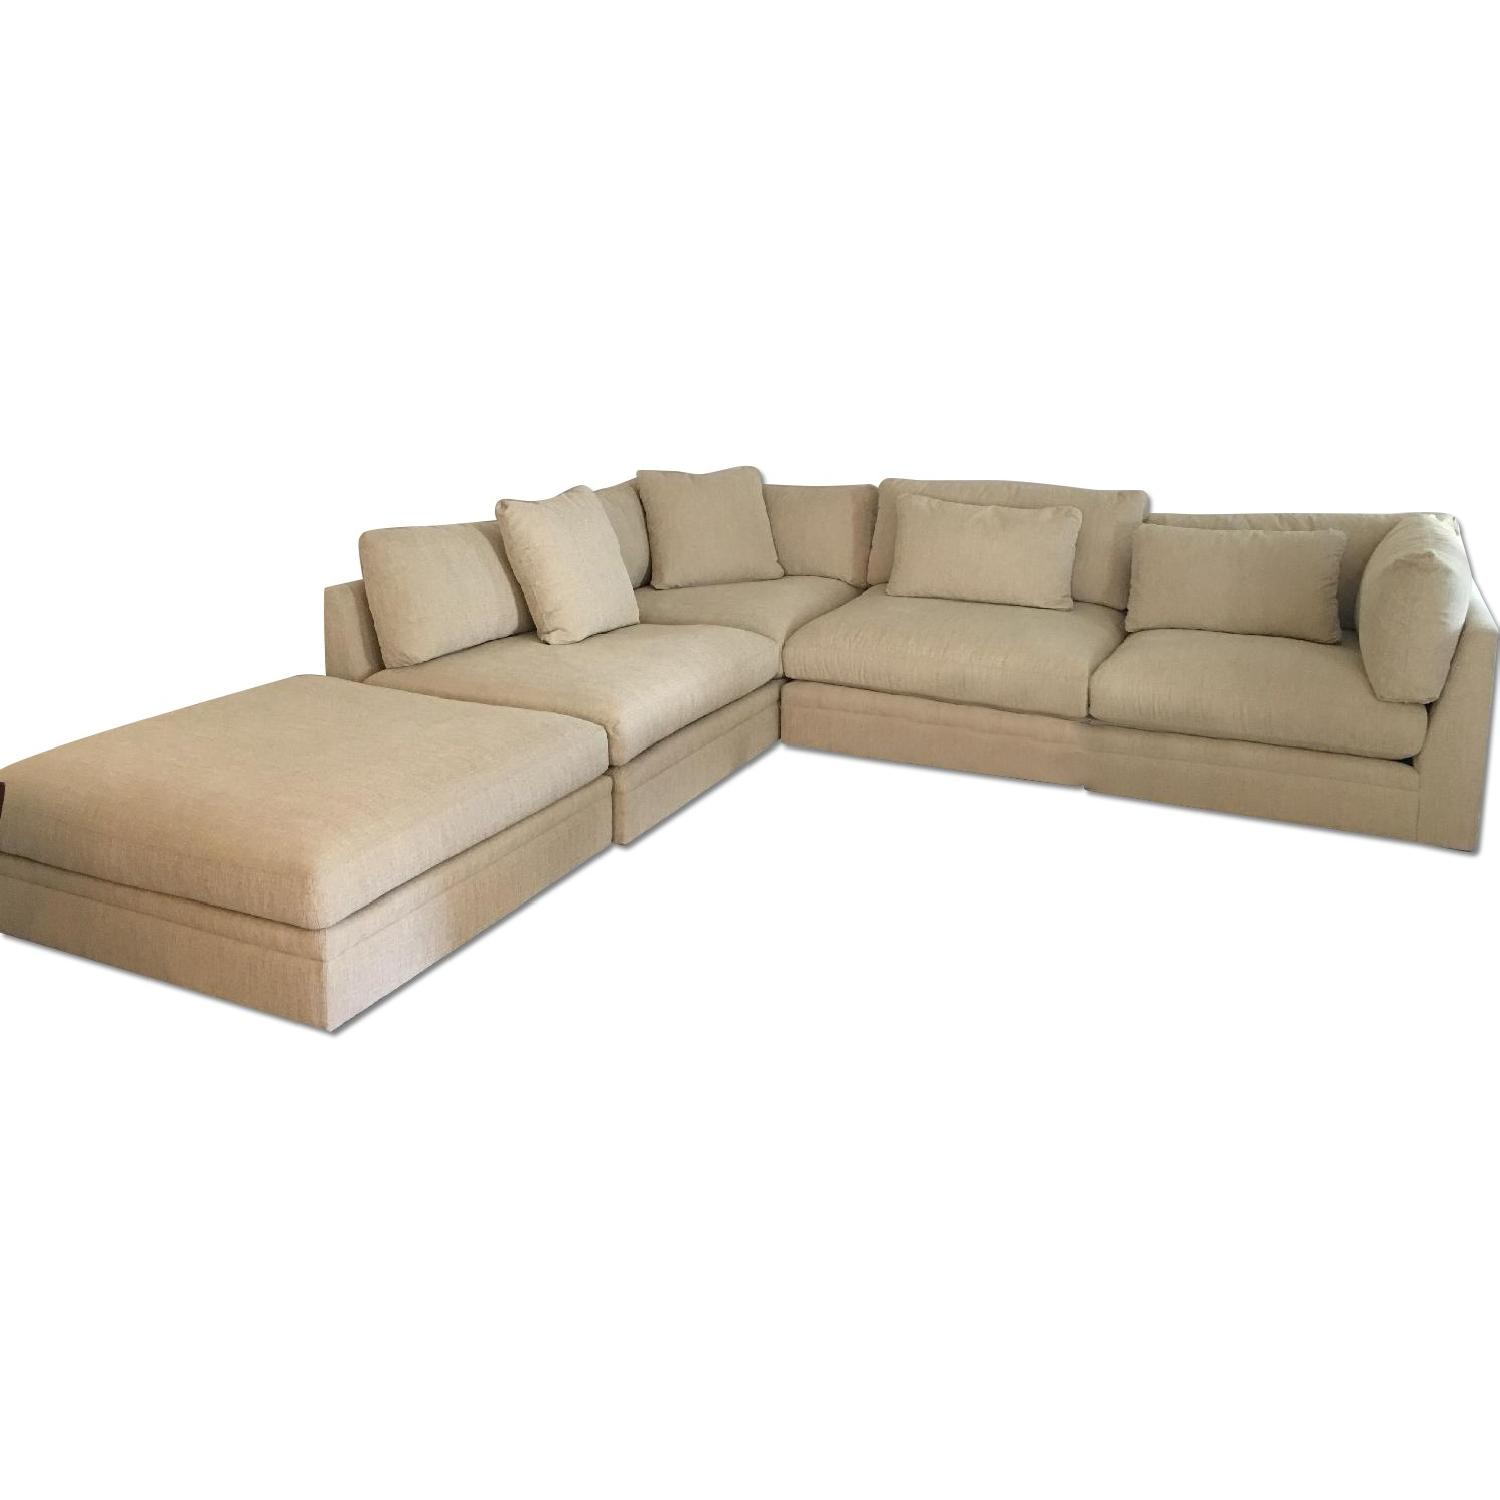 Arhaus Pavo 3 Piece Sectional - image-6